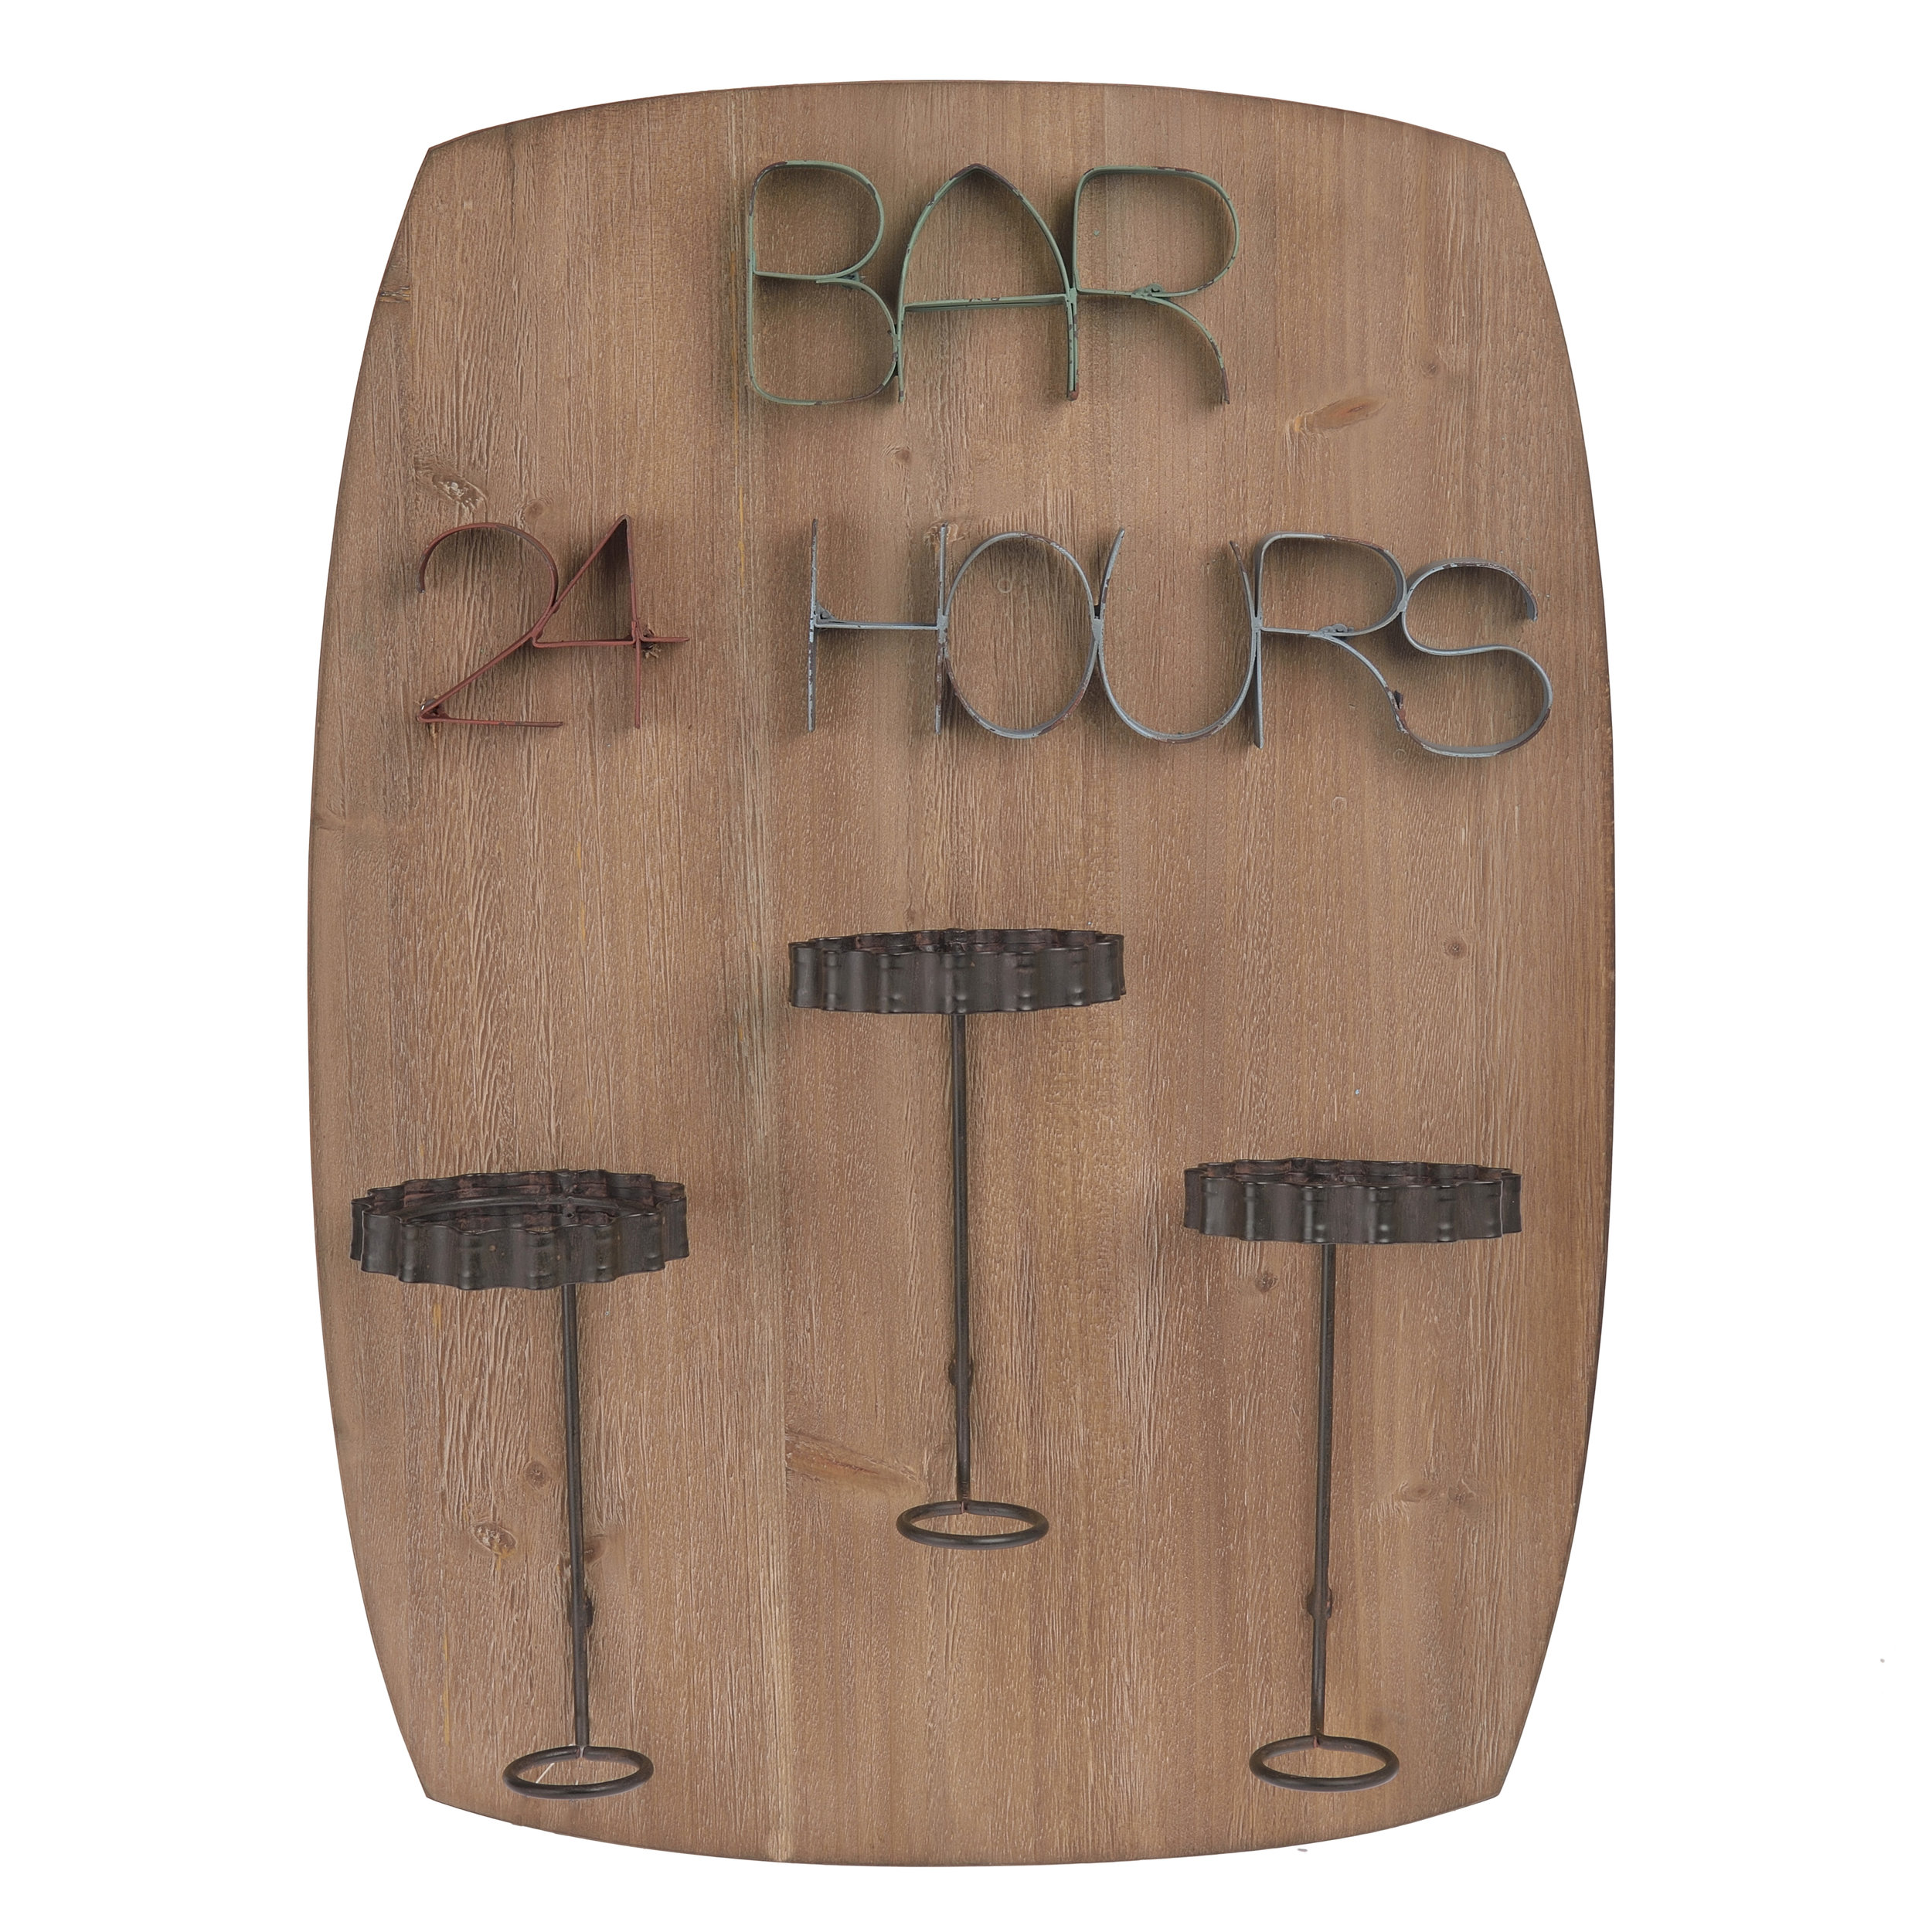 €70 METAL/WOODEN WALL BOTTLER HOLDER 'BAR' 44X13X60